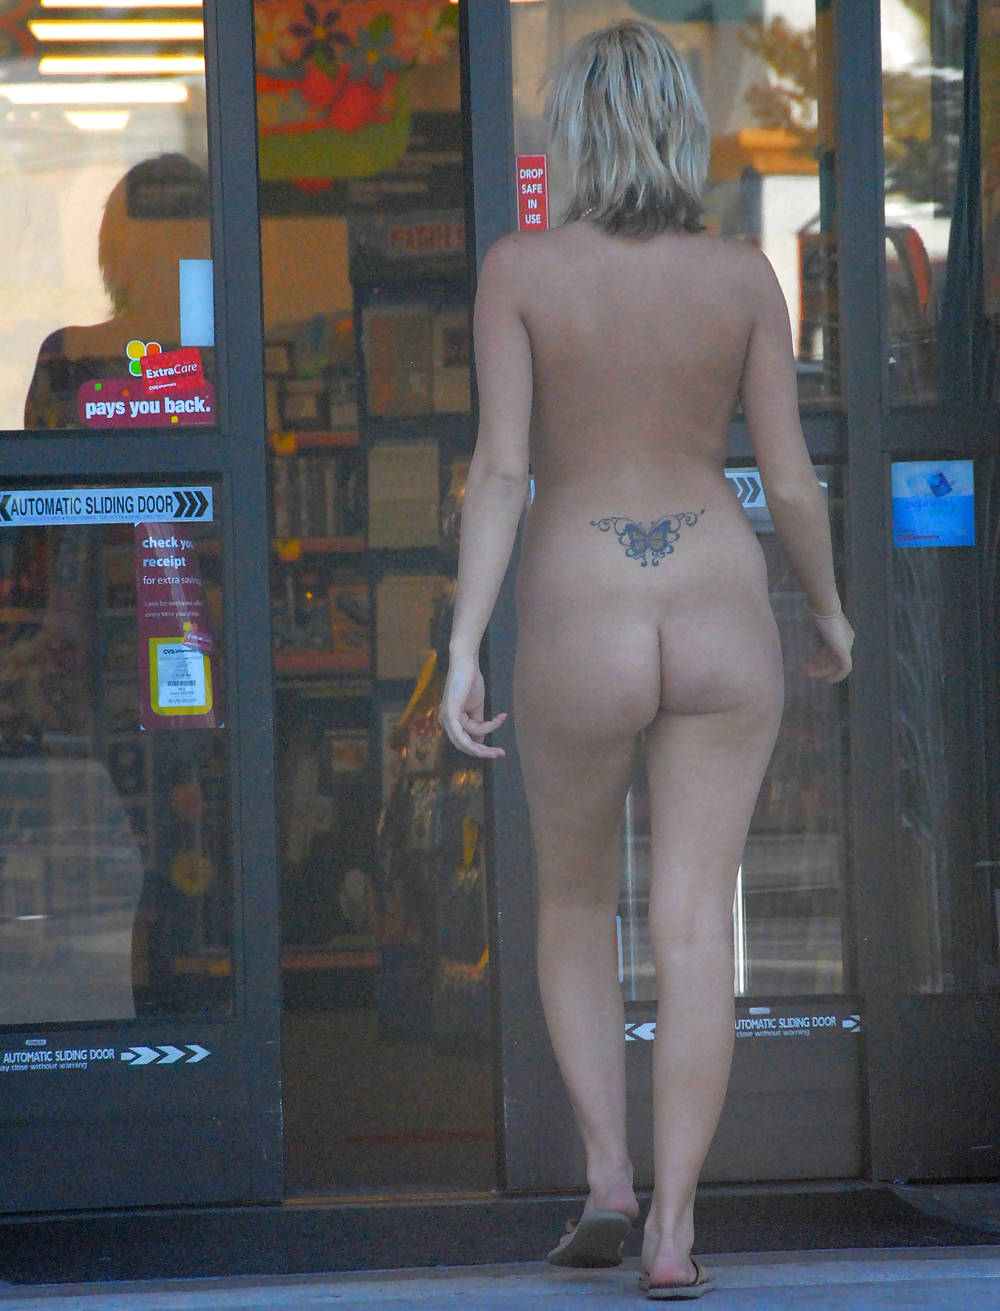 Sense. katrina johnson nude in public